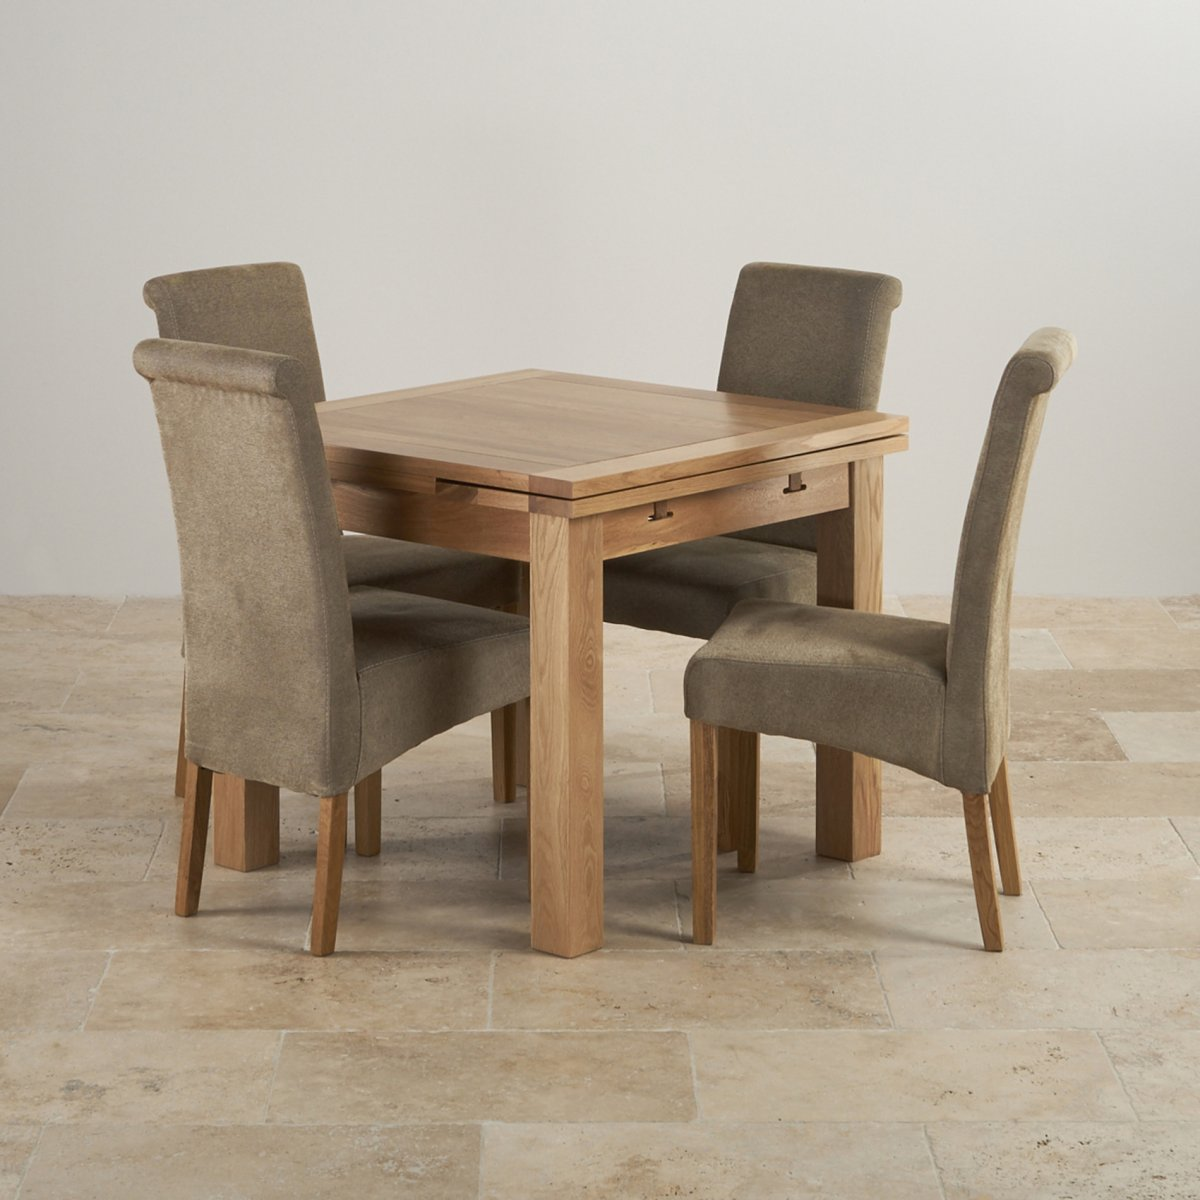 Oak Kitchen Tables And Chairs Sets: Dorset Oak 3ft Dining Table With 4 Sage Fabric Chairs